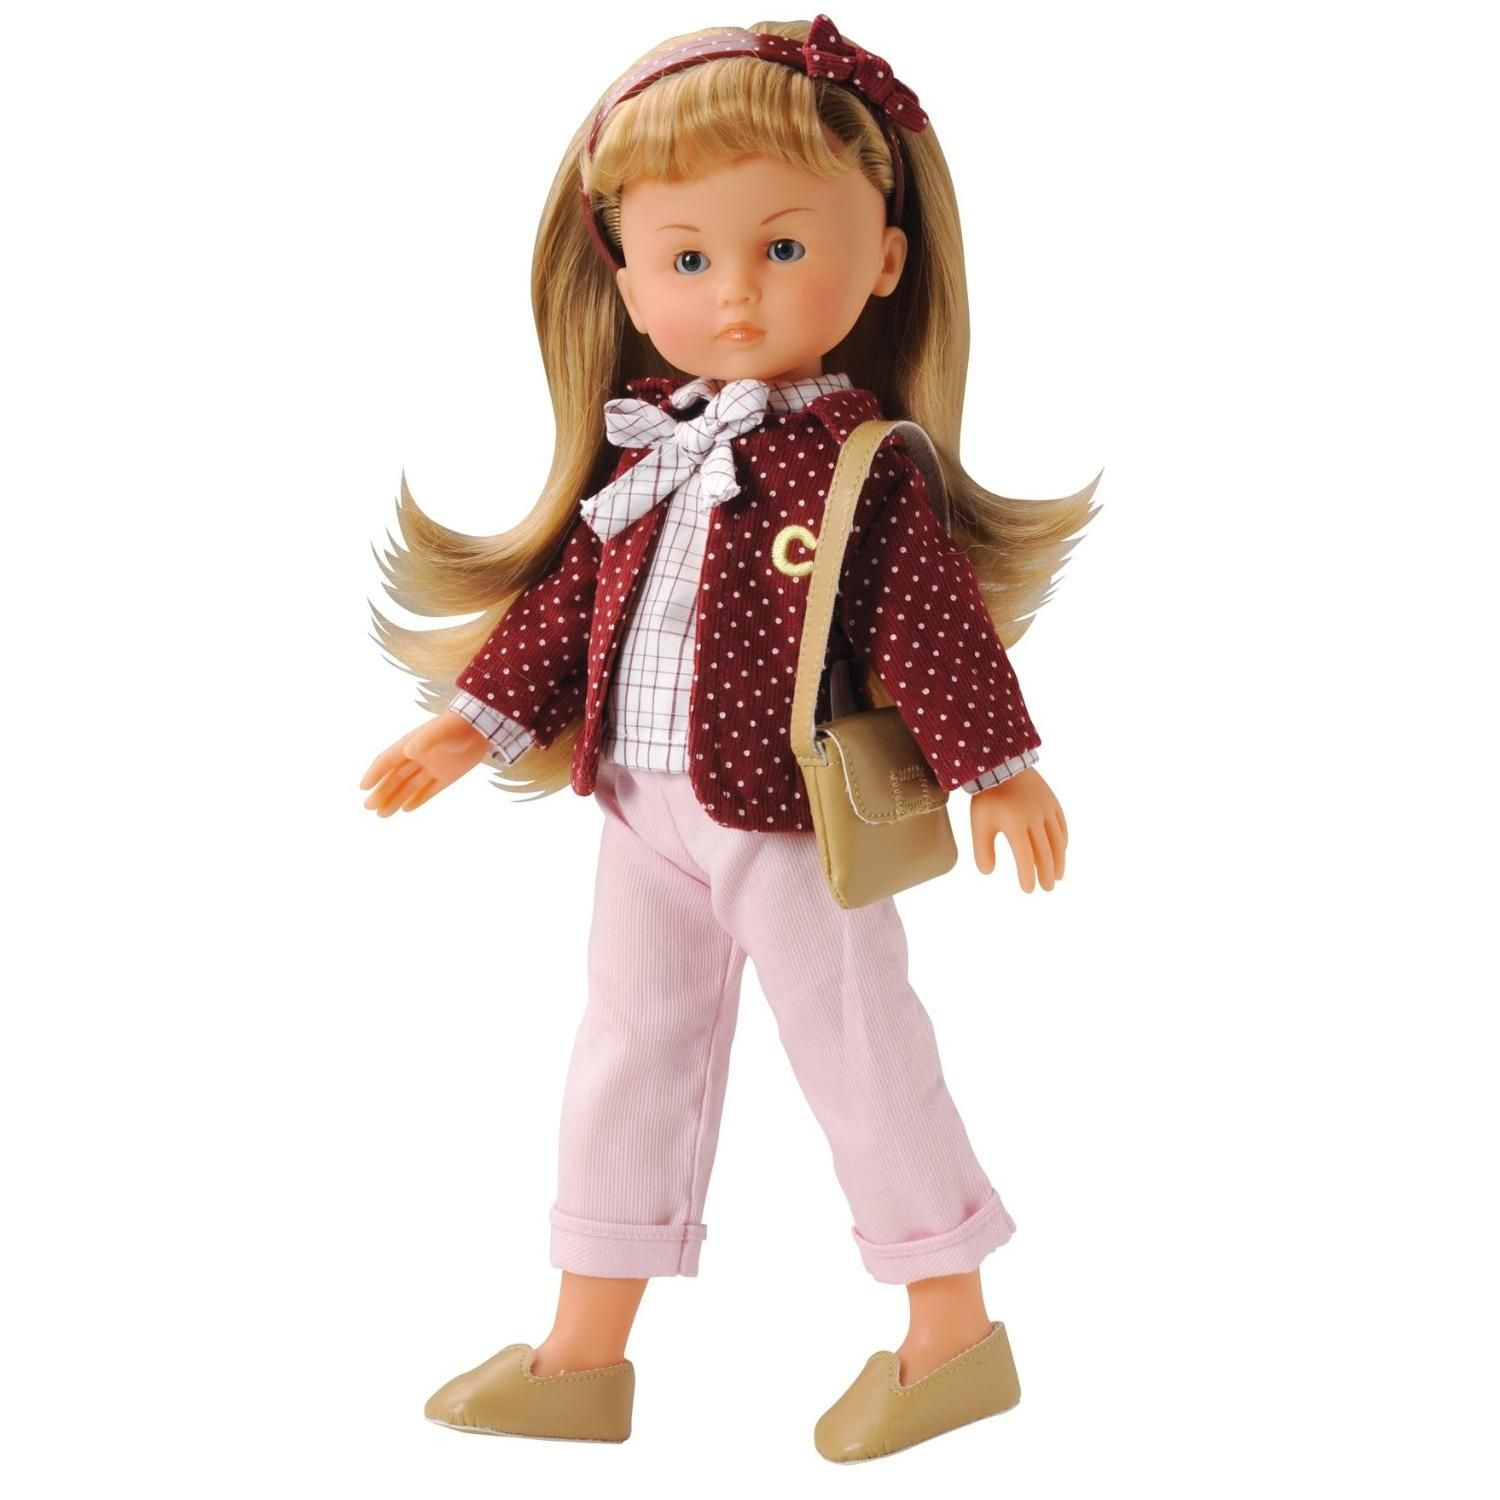 Camille at the University Play Doll by Corolle (7417) by Corolle